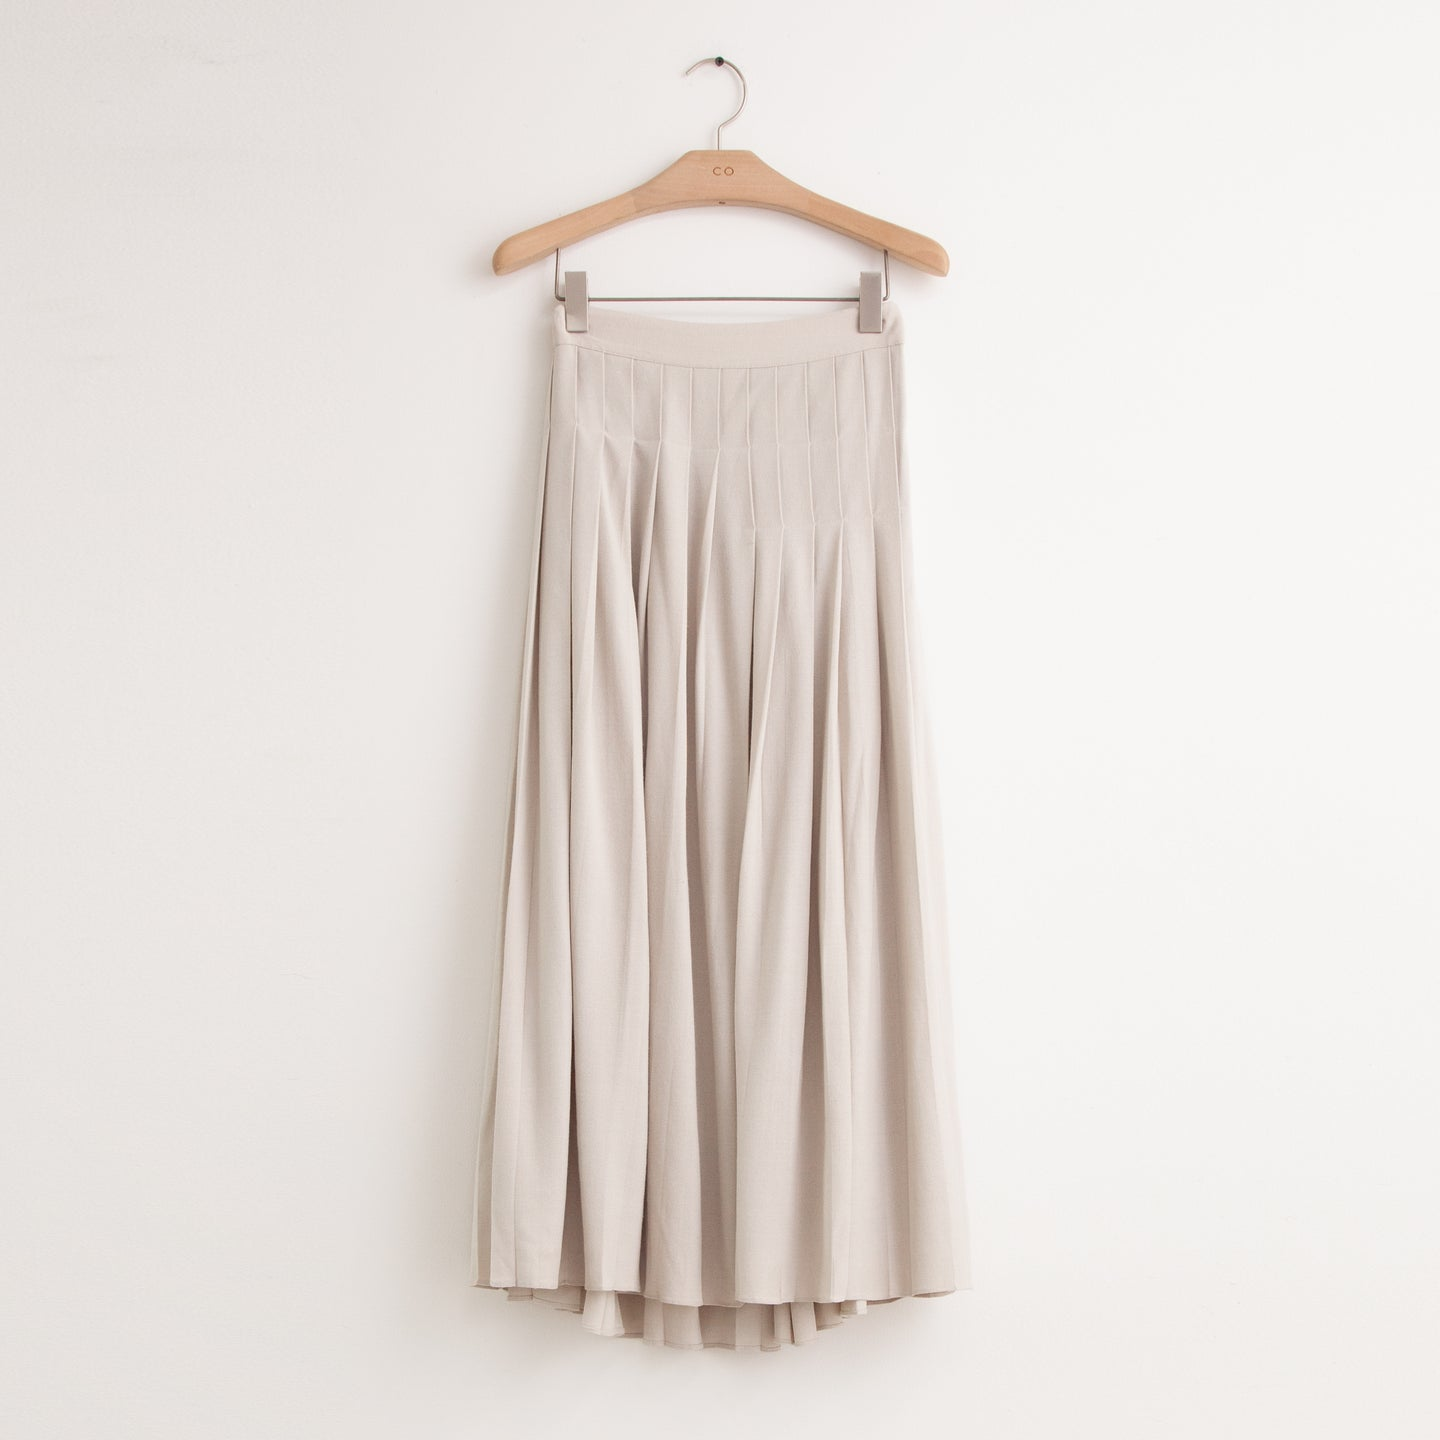 CO - Midi length pleated skirt in ivory crepe